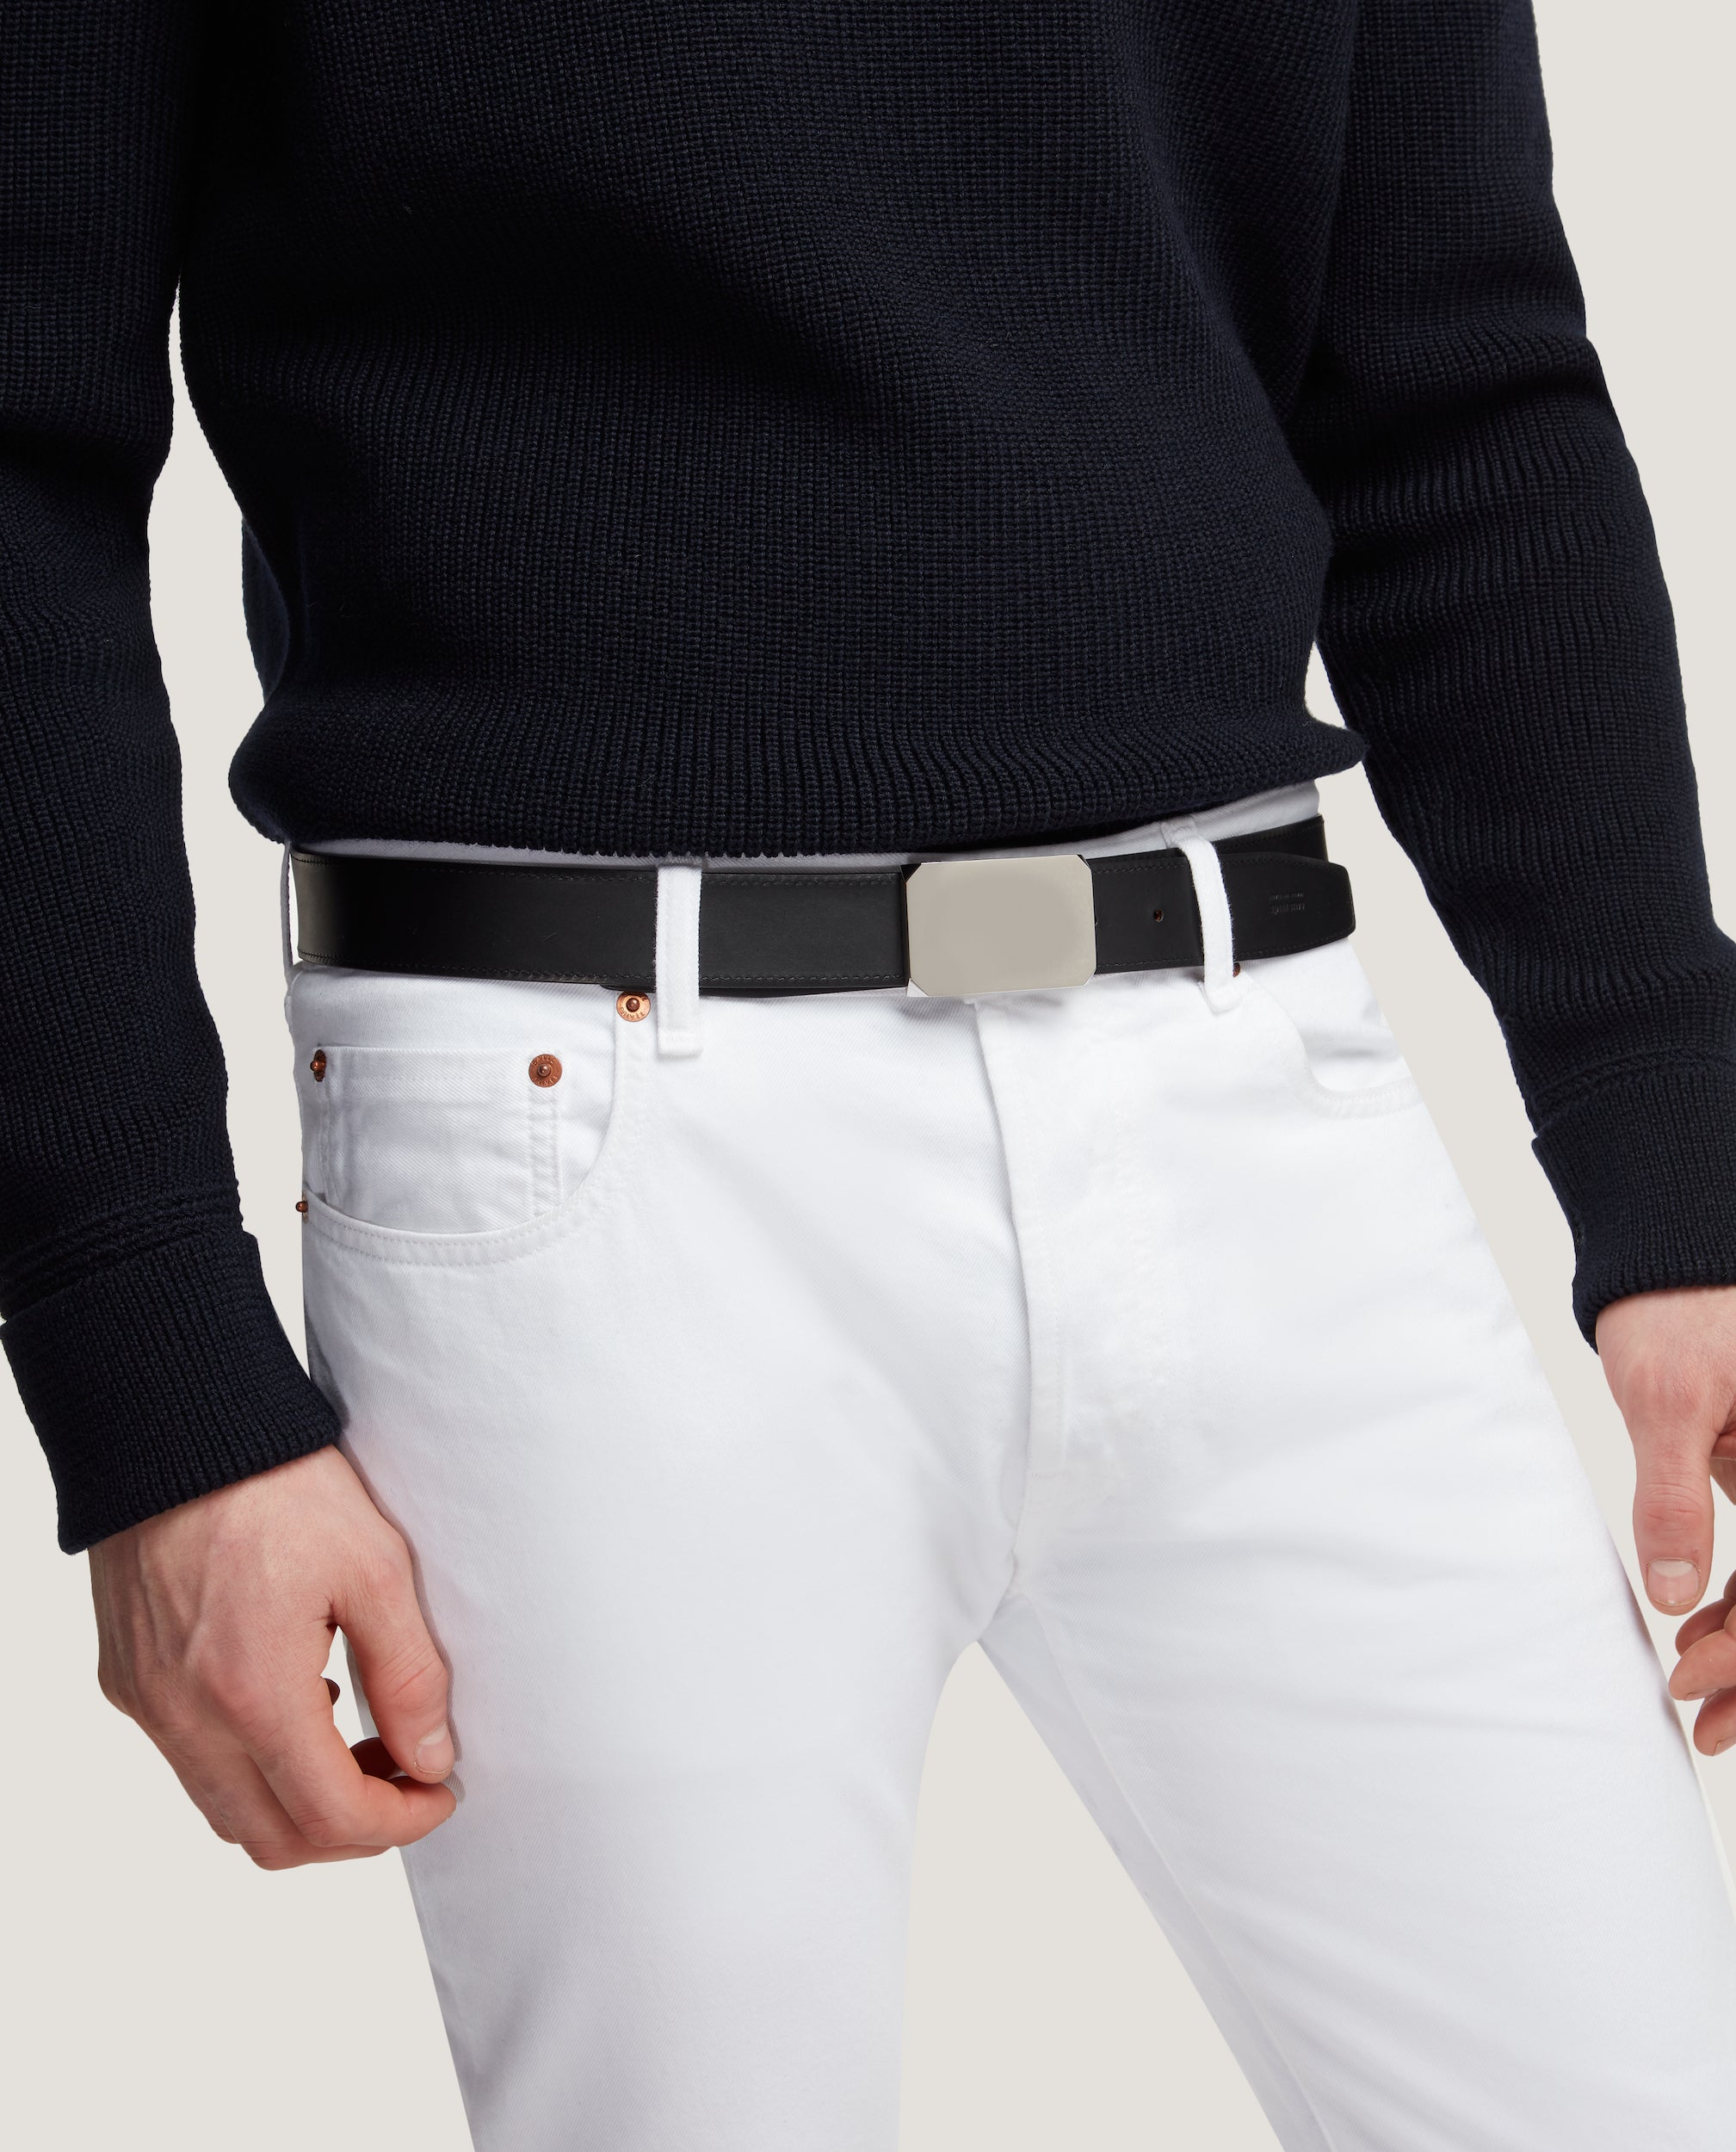 MILTON Reversible belt with detachable buckle